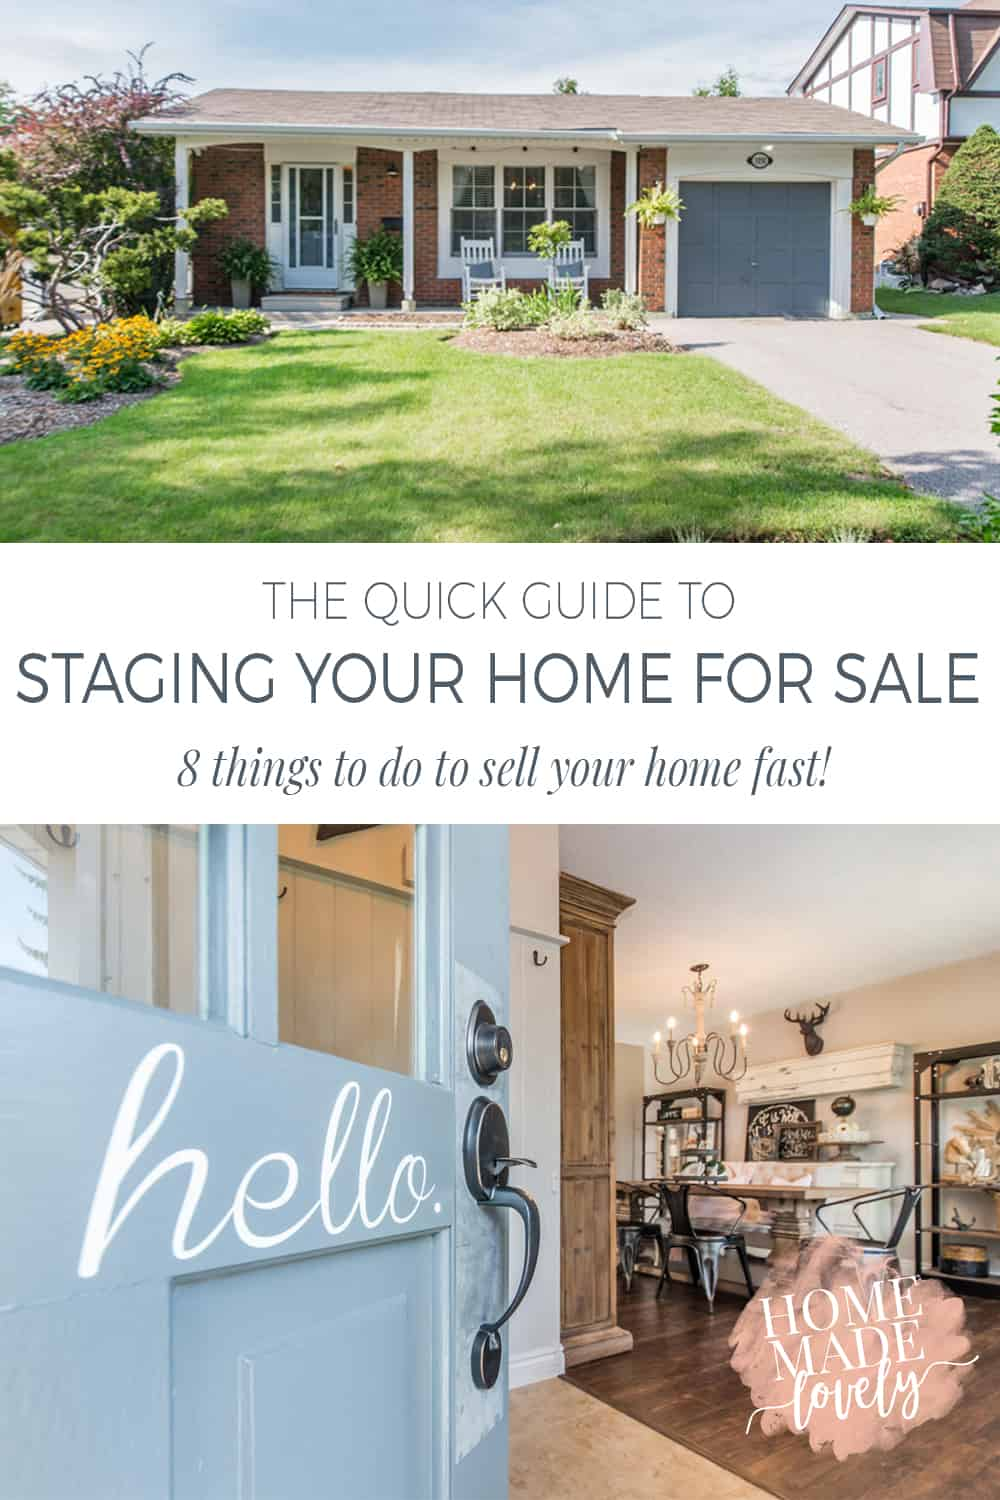 Do you want to make the most money possible from the sale of your home? Do you want to sell your home fast too? Here are 8 tips for staging your home for sale that will help you to sell your home fast!